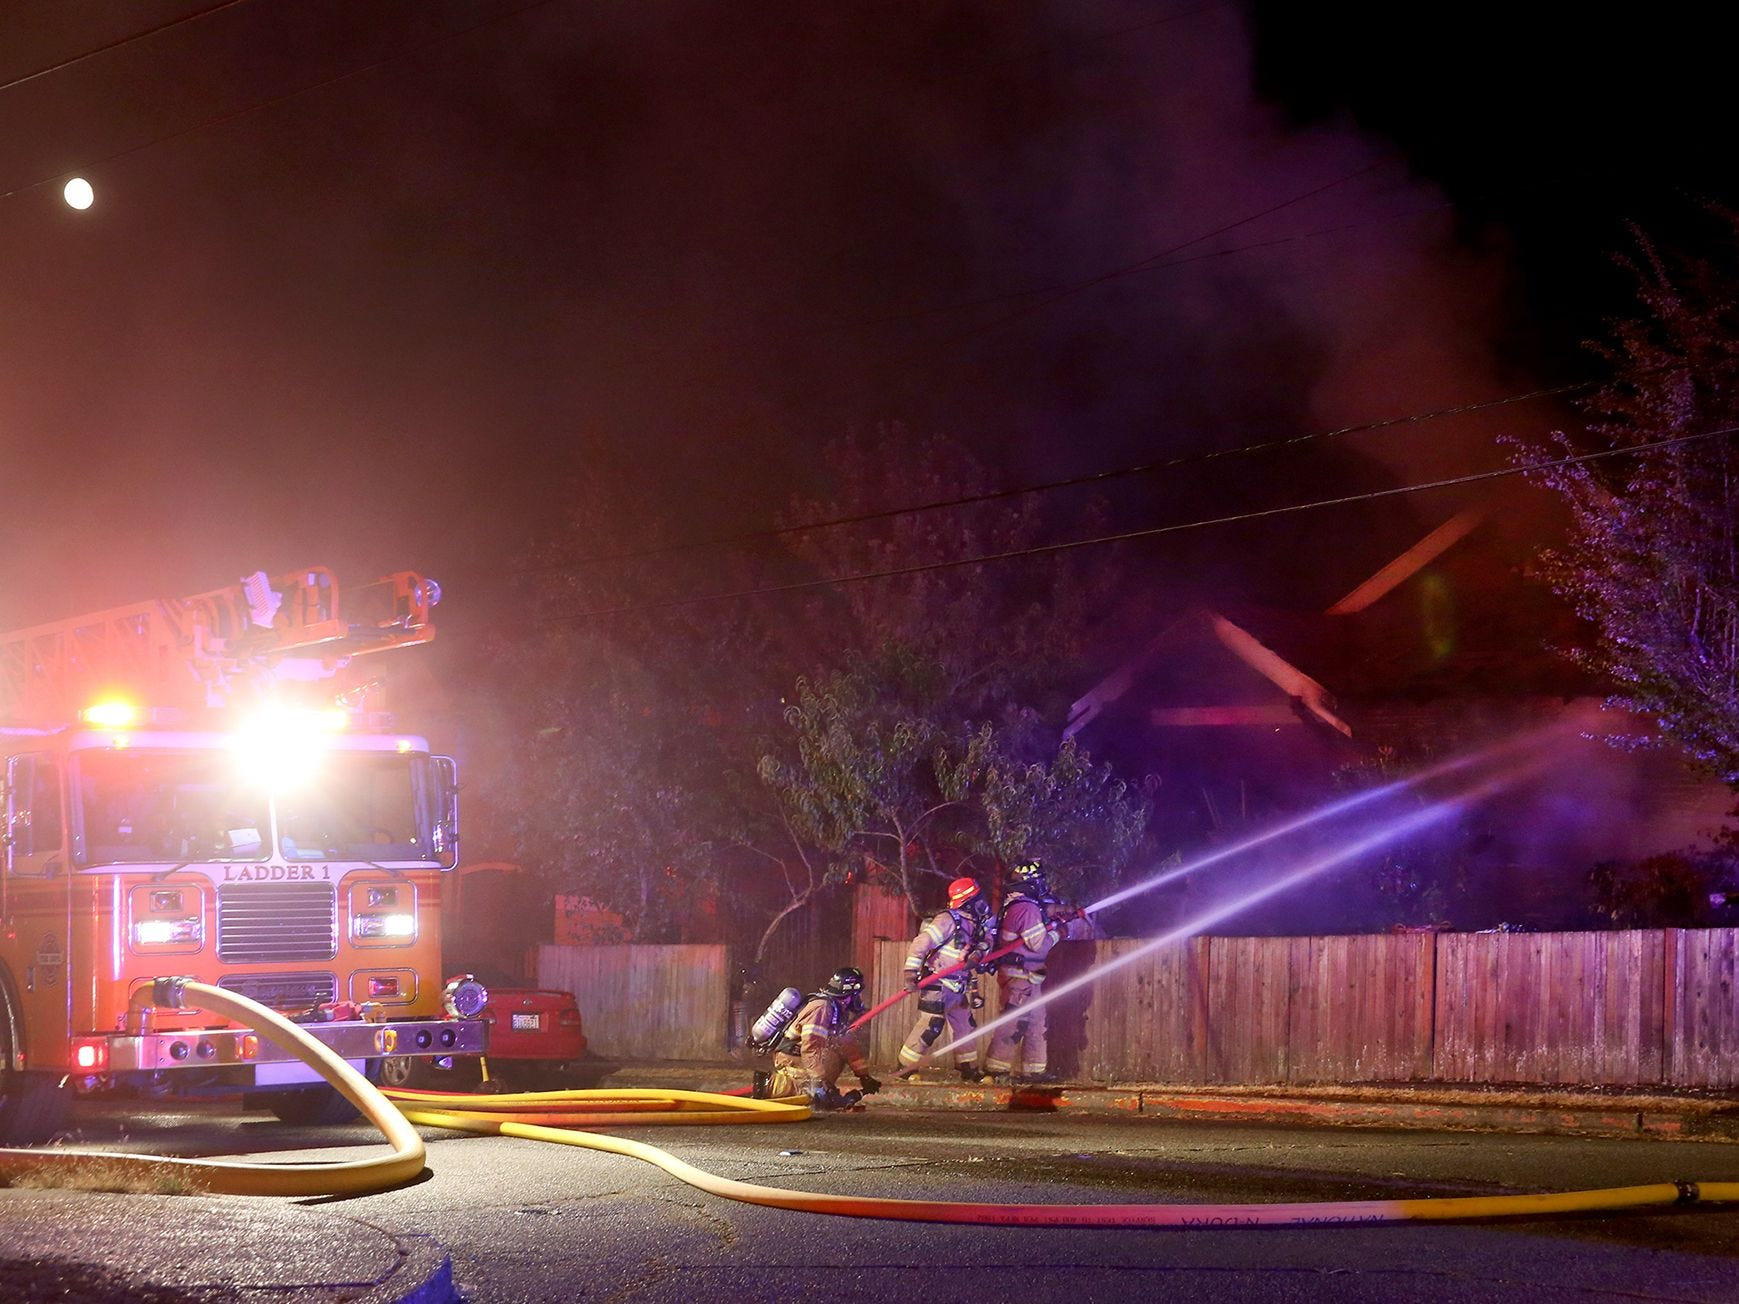 Bremerton firefighters battle a late night residential structure fire at 5th and Chester in Bremerton on Monday, July 30, 2018.